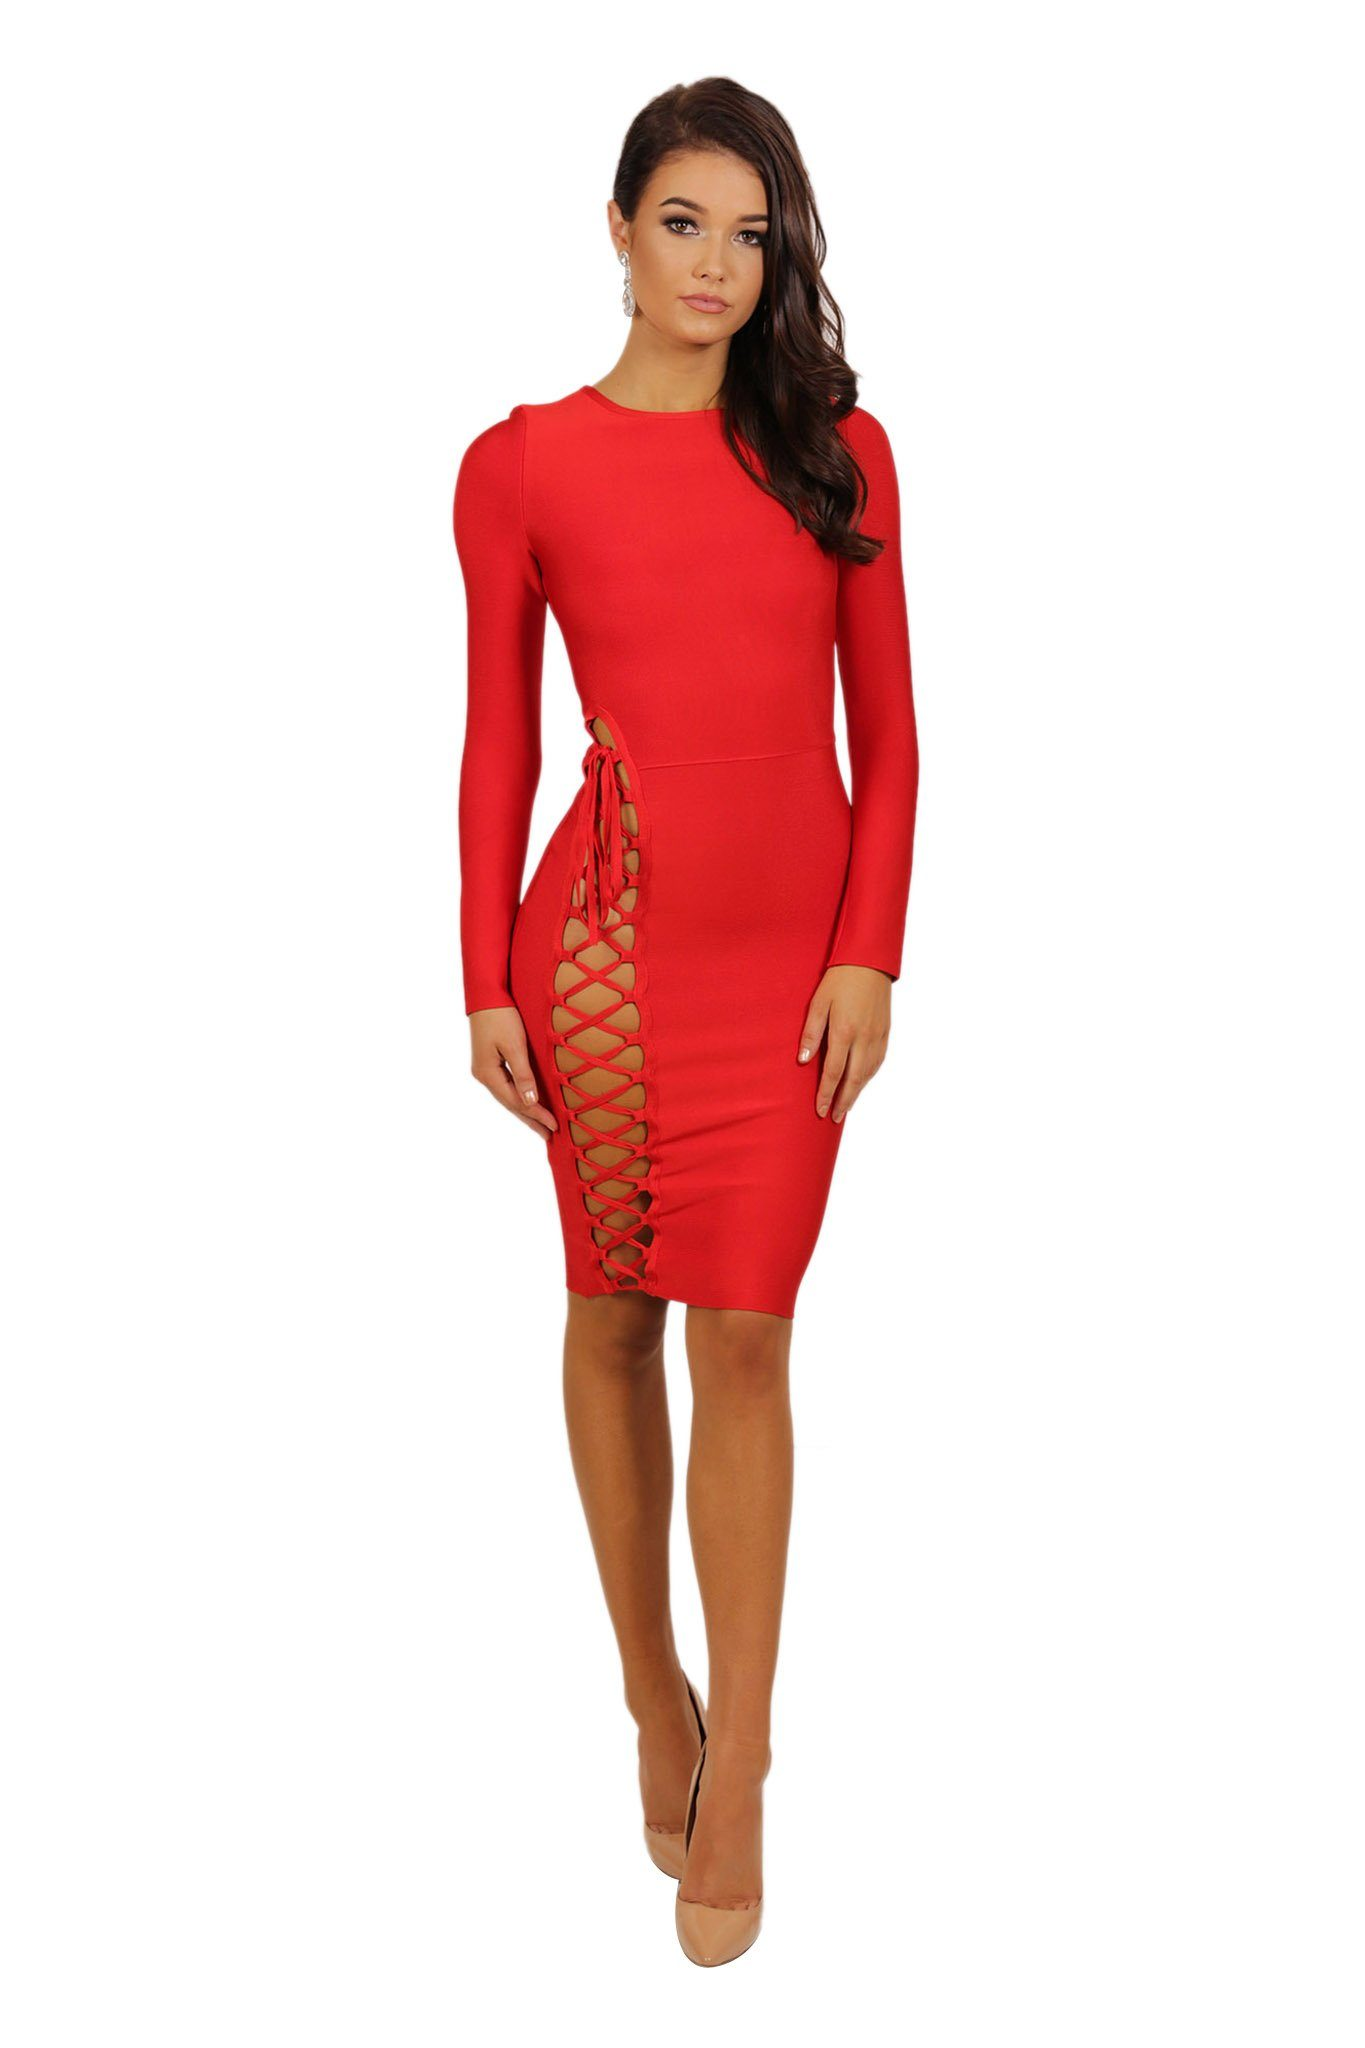 c49c88a9a9 Front of long sleeve knee length form fitted bandage dress with side lace up  design from